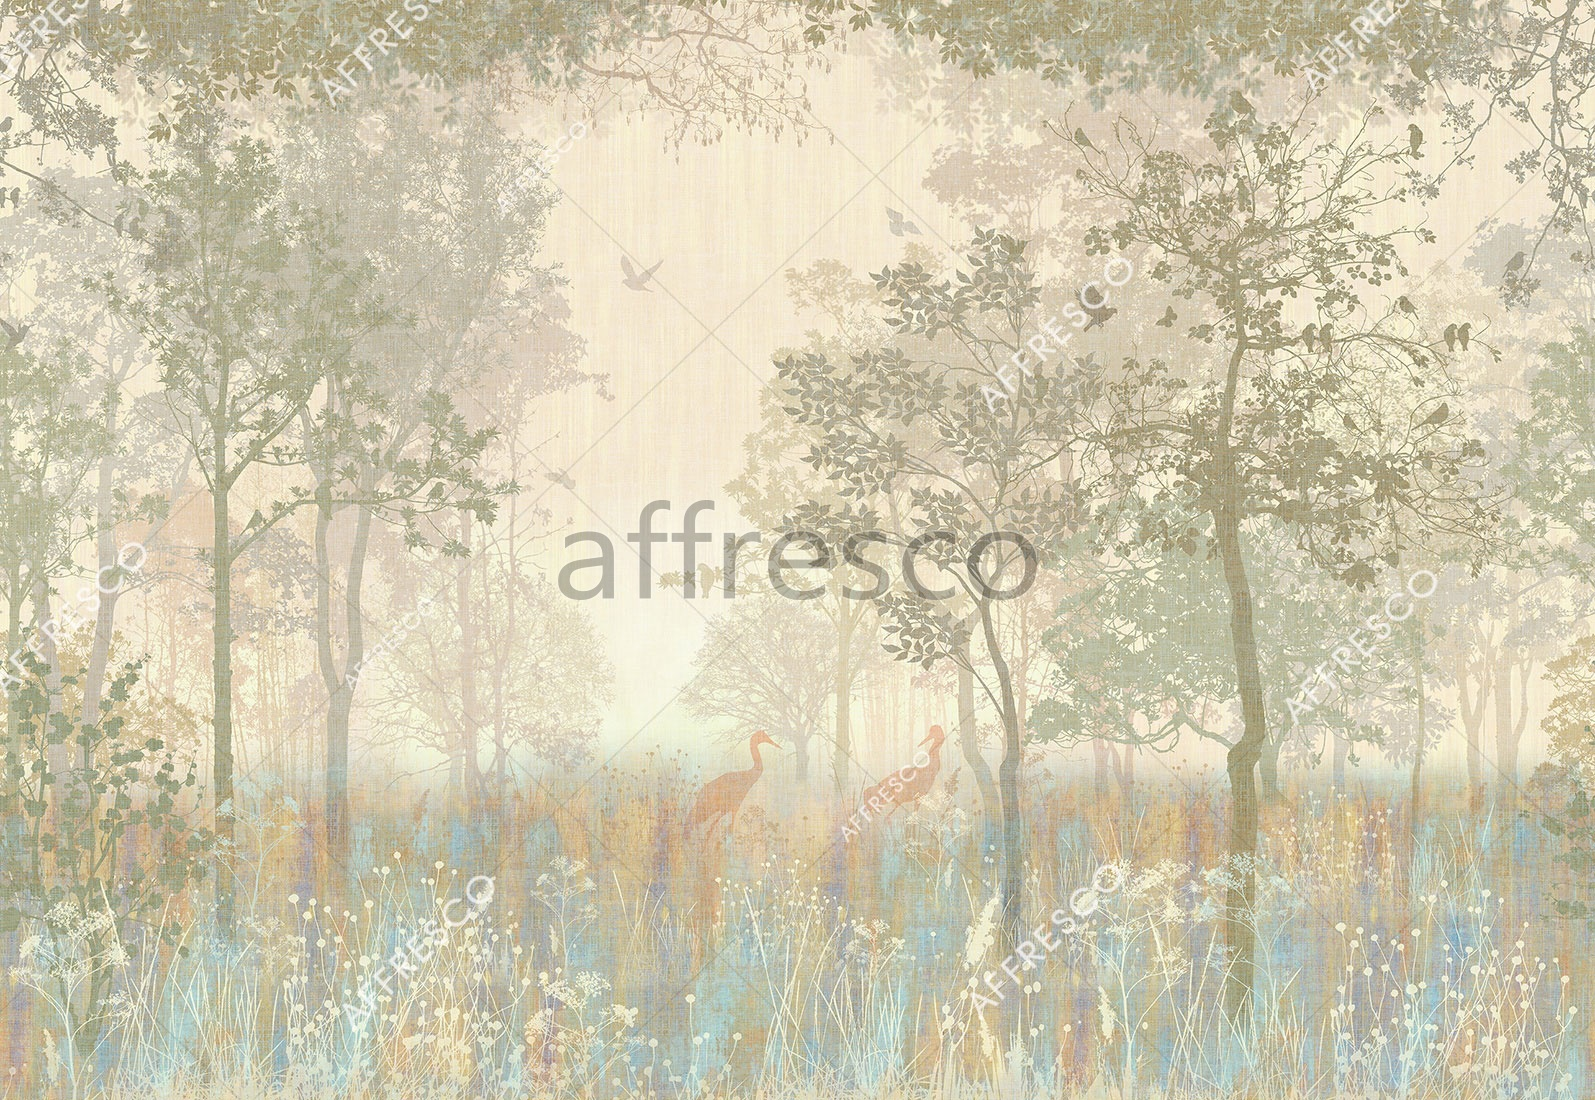 ID135988 | Forest |  | Affresco Factory